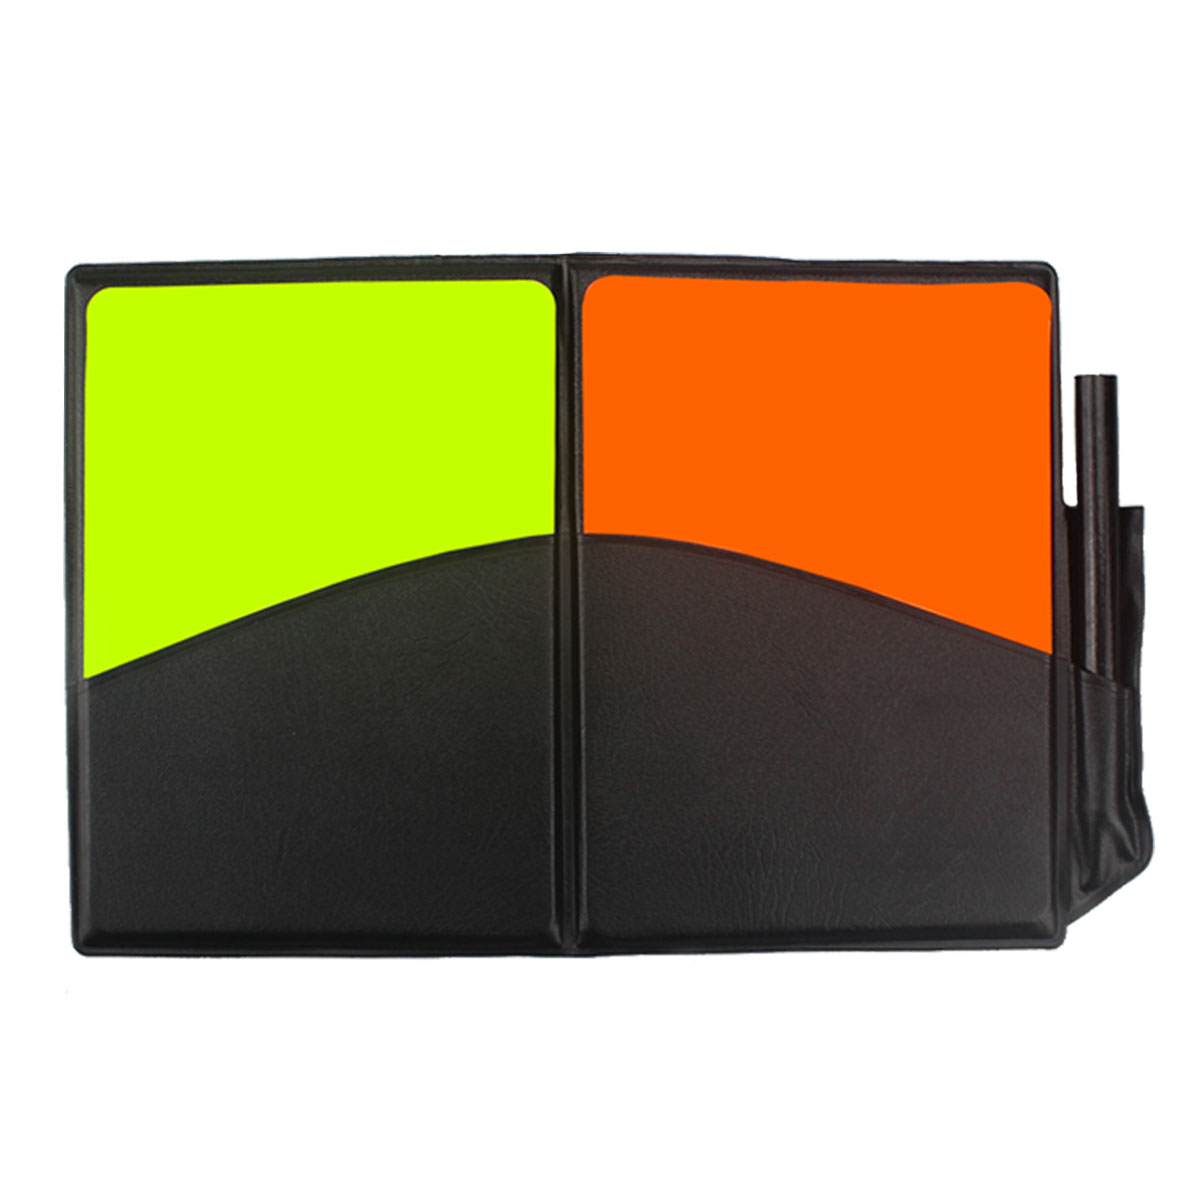 Soccer Football Referee Judge Card Red Yellow Cards Plastic with Wallet Case Pencil Recording Paper Professional for Match Game(China (Mainland))